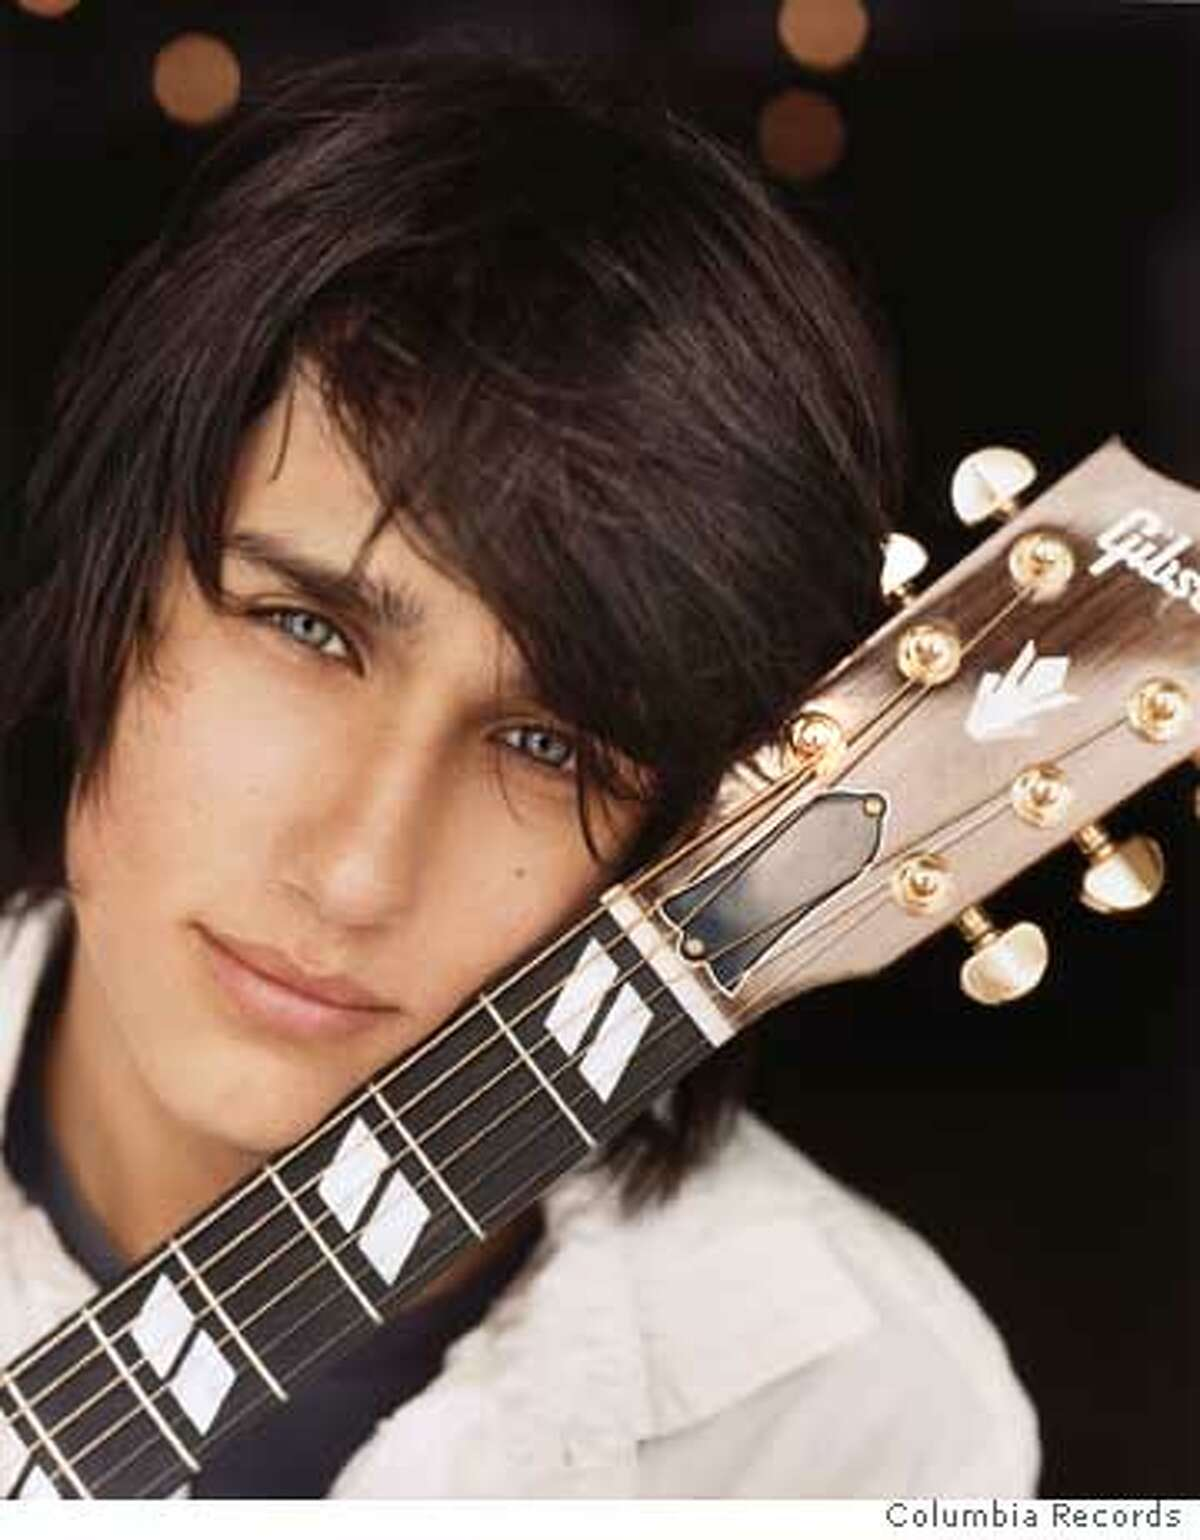 Teddy Geiger Ran on: 02-05-2006 With a CD due next month and a role in a TV series, Teddy Geiger no longer is just another boring kid in high school.